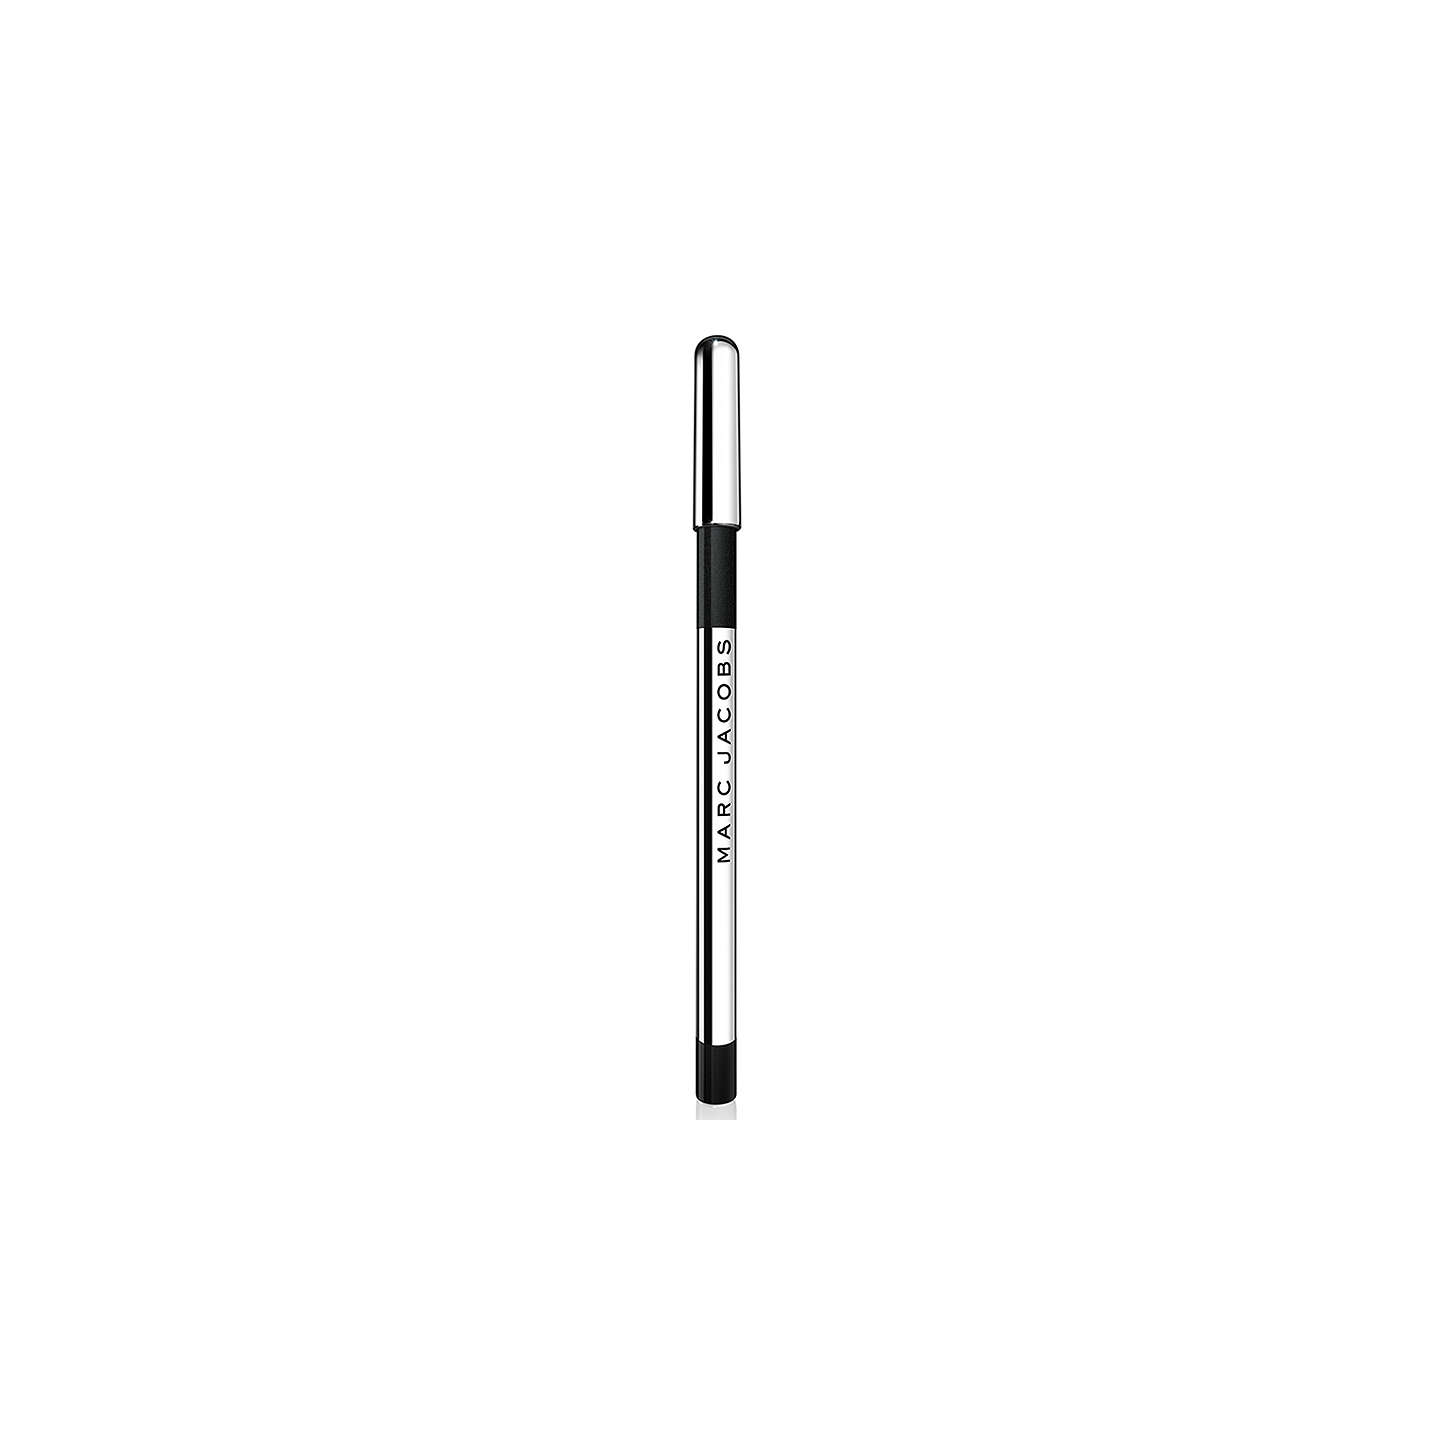 BuyMarc Jacobs Highliner Gel Eye Crayon, Blacquer Online at johnlewis.com